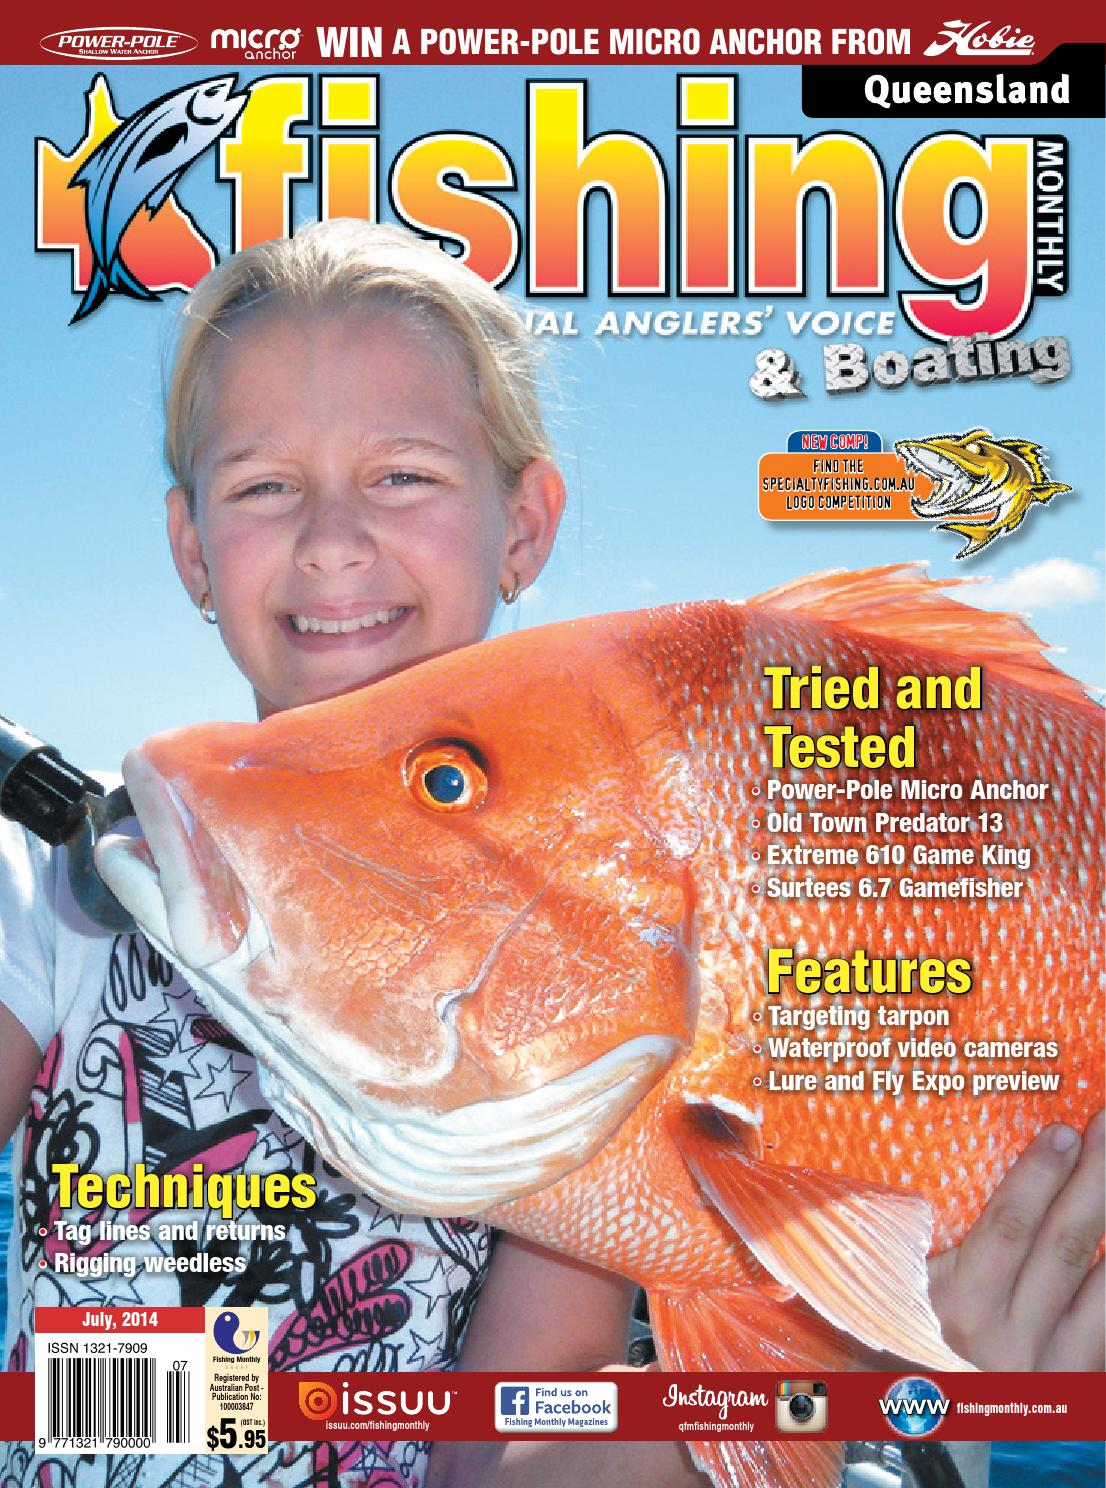 fd3cd7e1a2c10 Queensland Fishing Monthly - July 2014 by Fishing Monthly - issuu